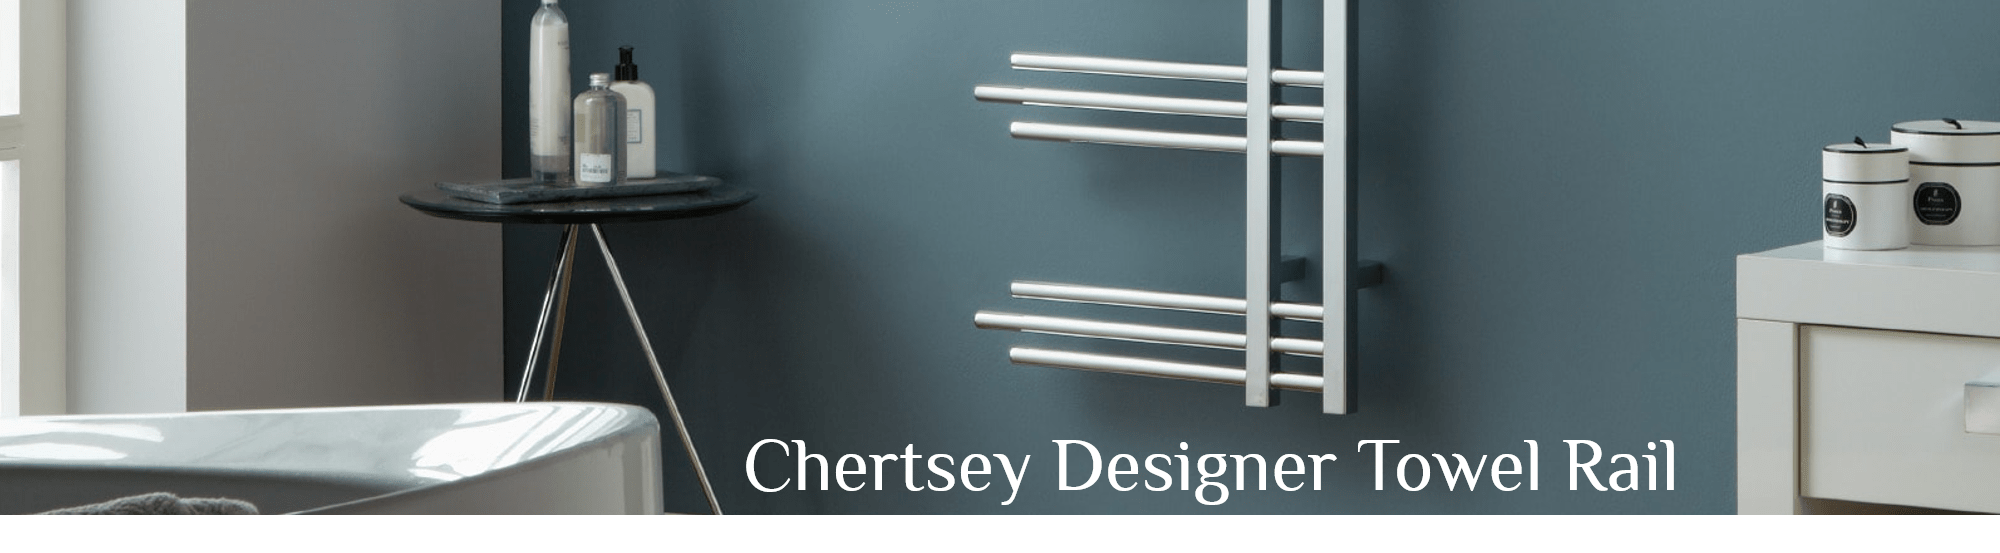 Chertsey Chrome Designer Towel Rail Designer Bathroom Radiator